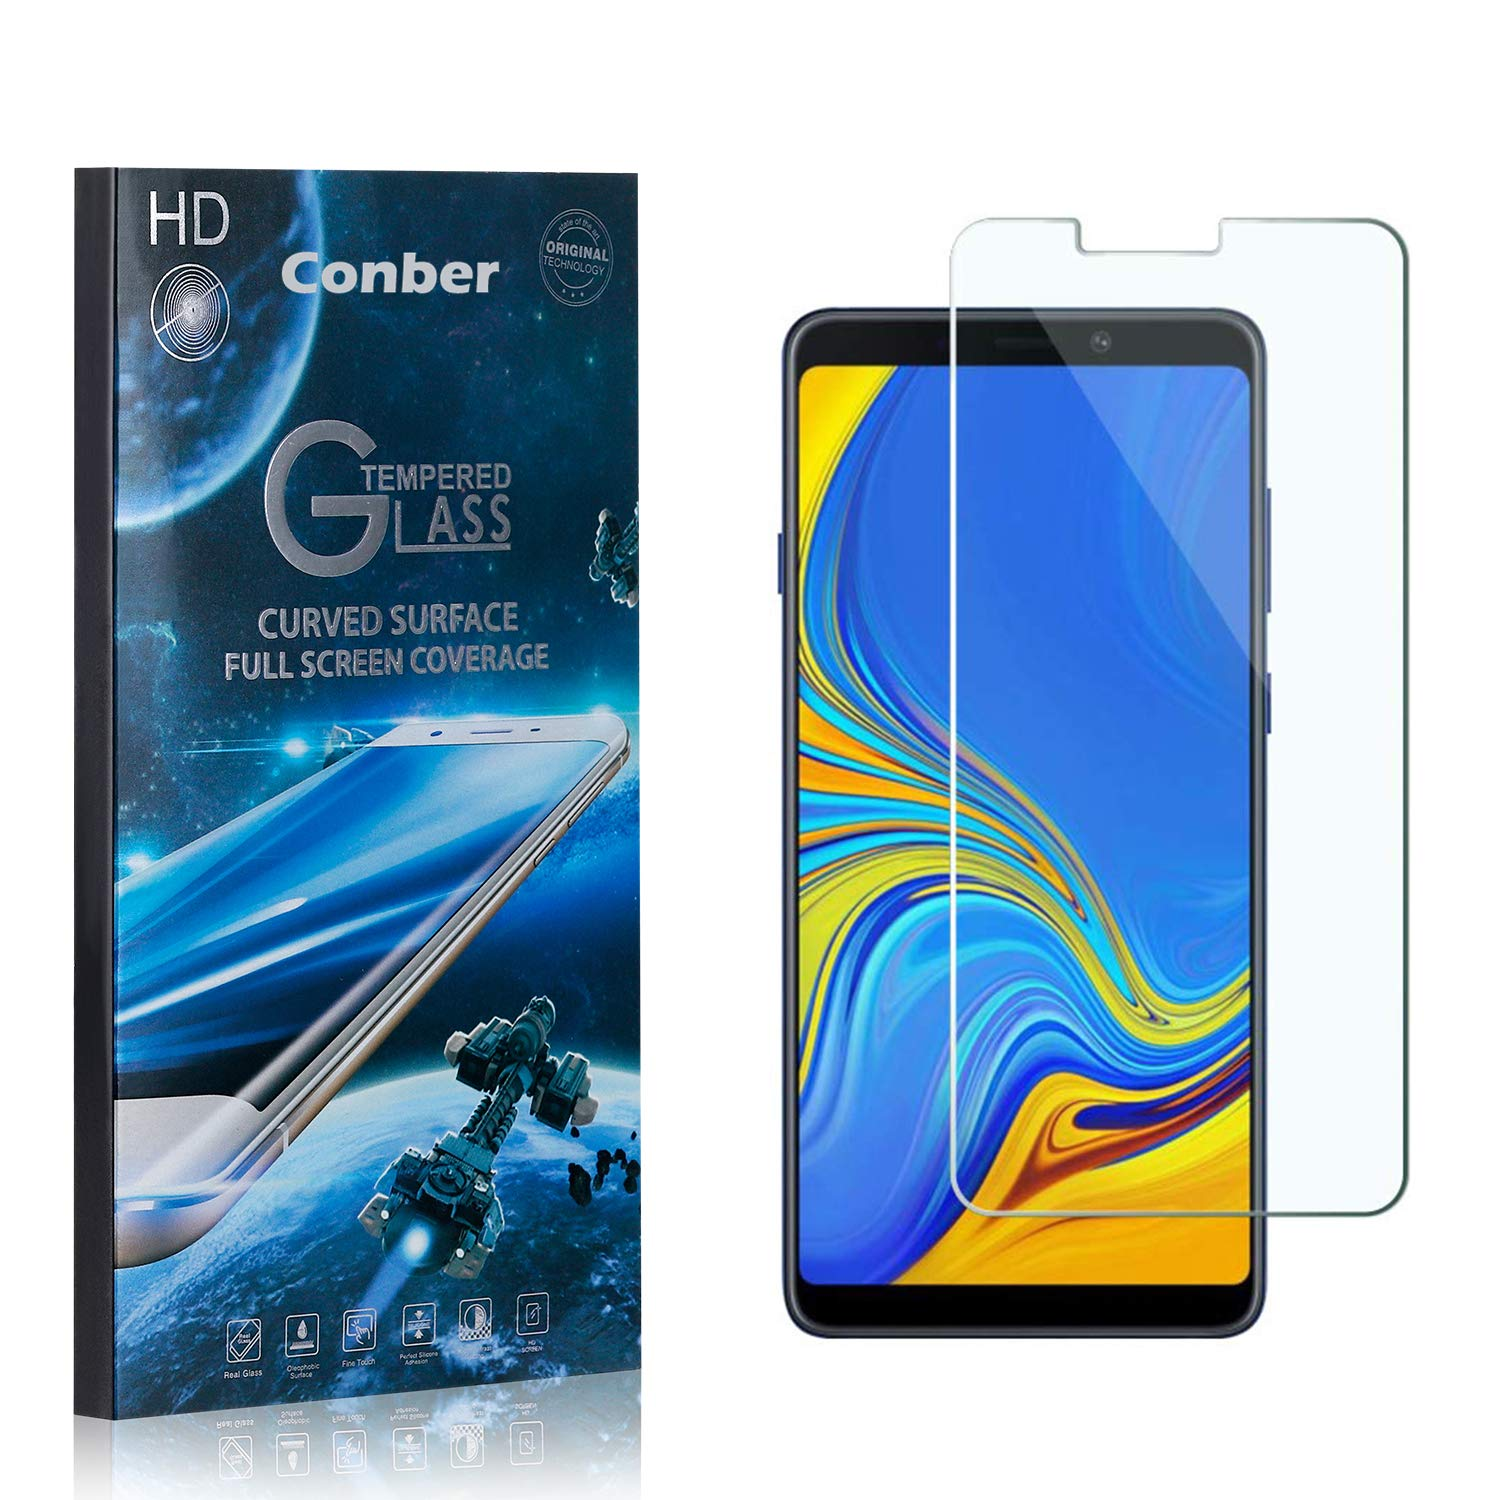 Conber 4 Sale price Pack Screen Protector for Sc Samsung A9 2018 Industry No. 1 Galaxy